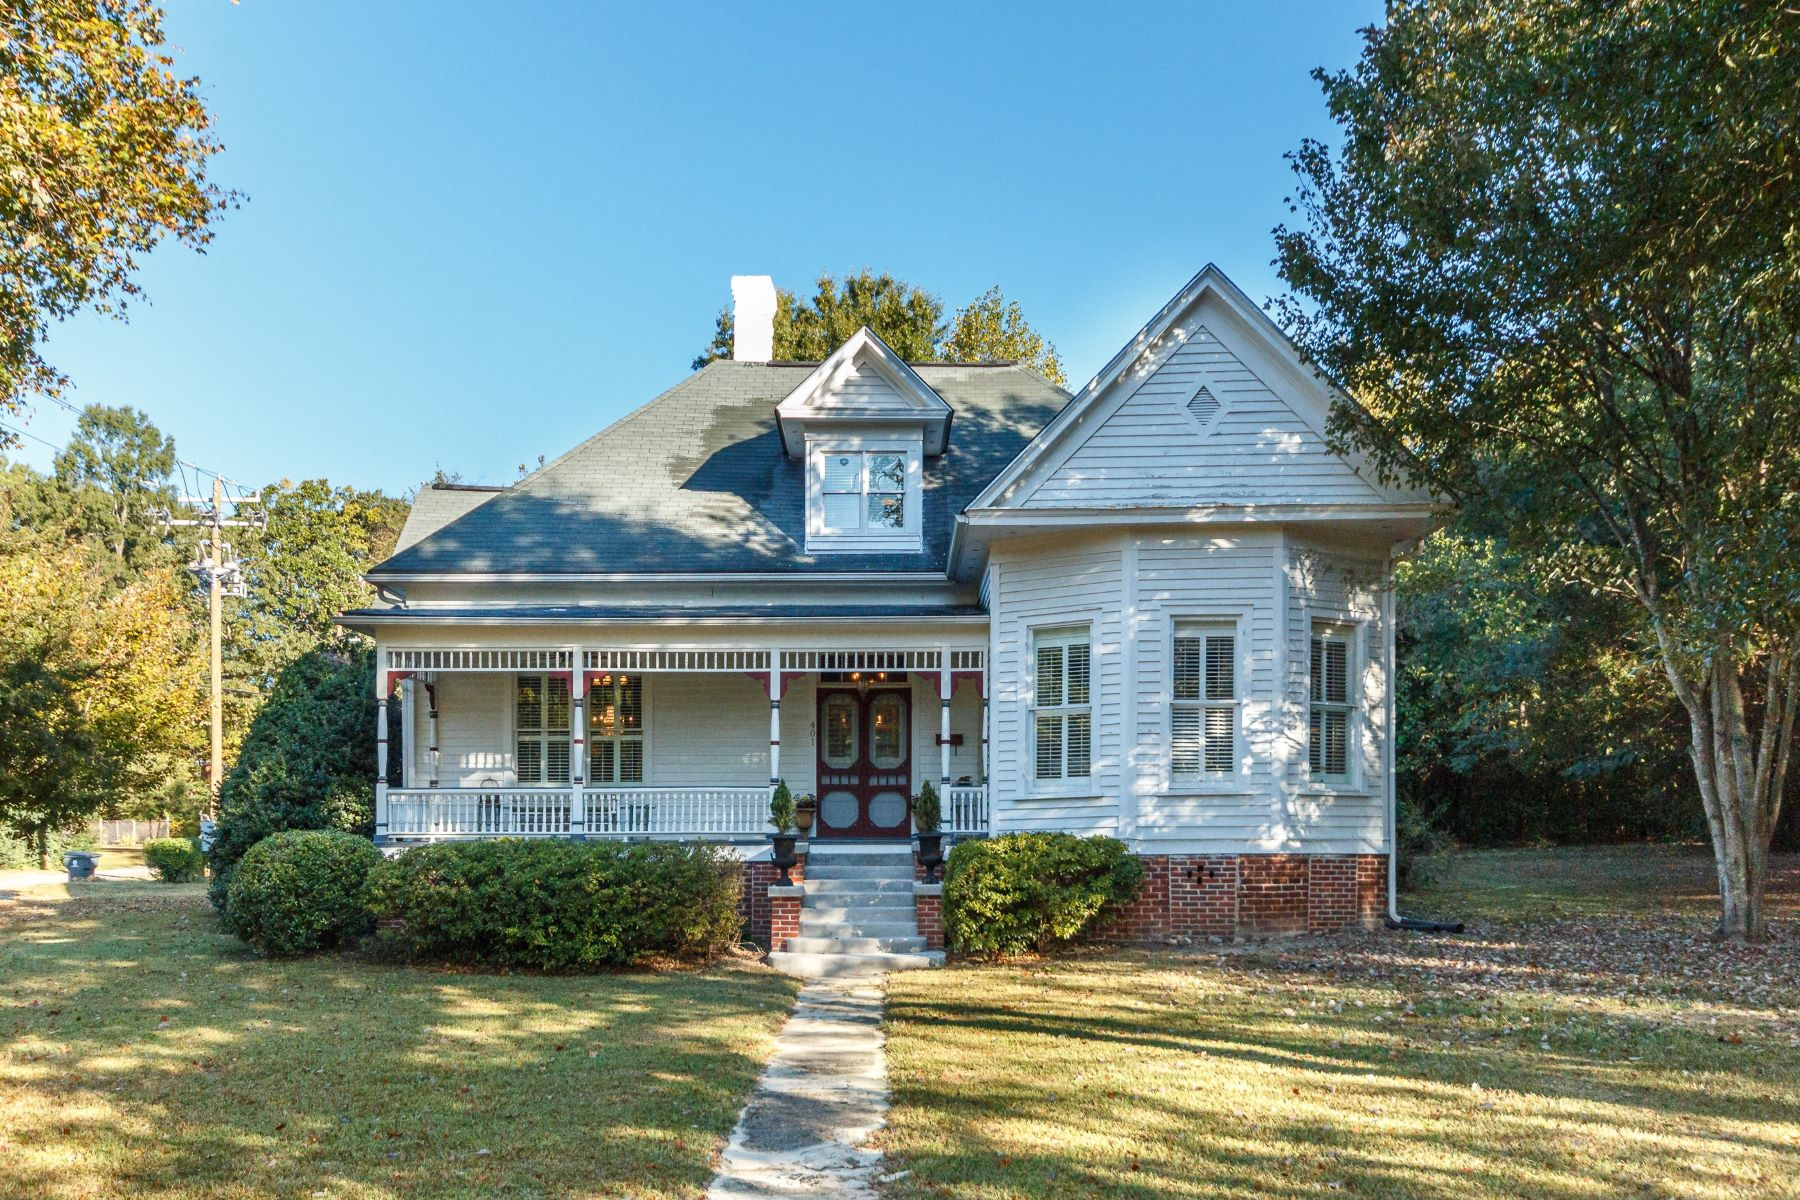 Single Family Homes for Active at Revered Restoration of Franklinton Victorian 401 E. Mason Street Franklinton, North Carolina 27525 United States